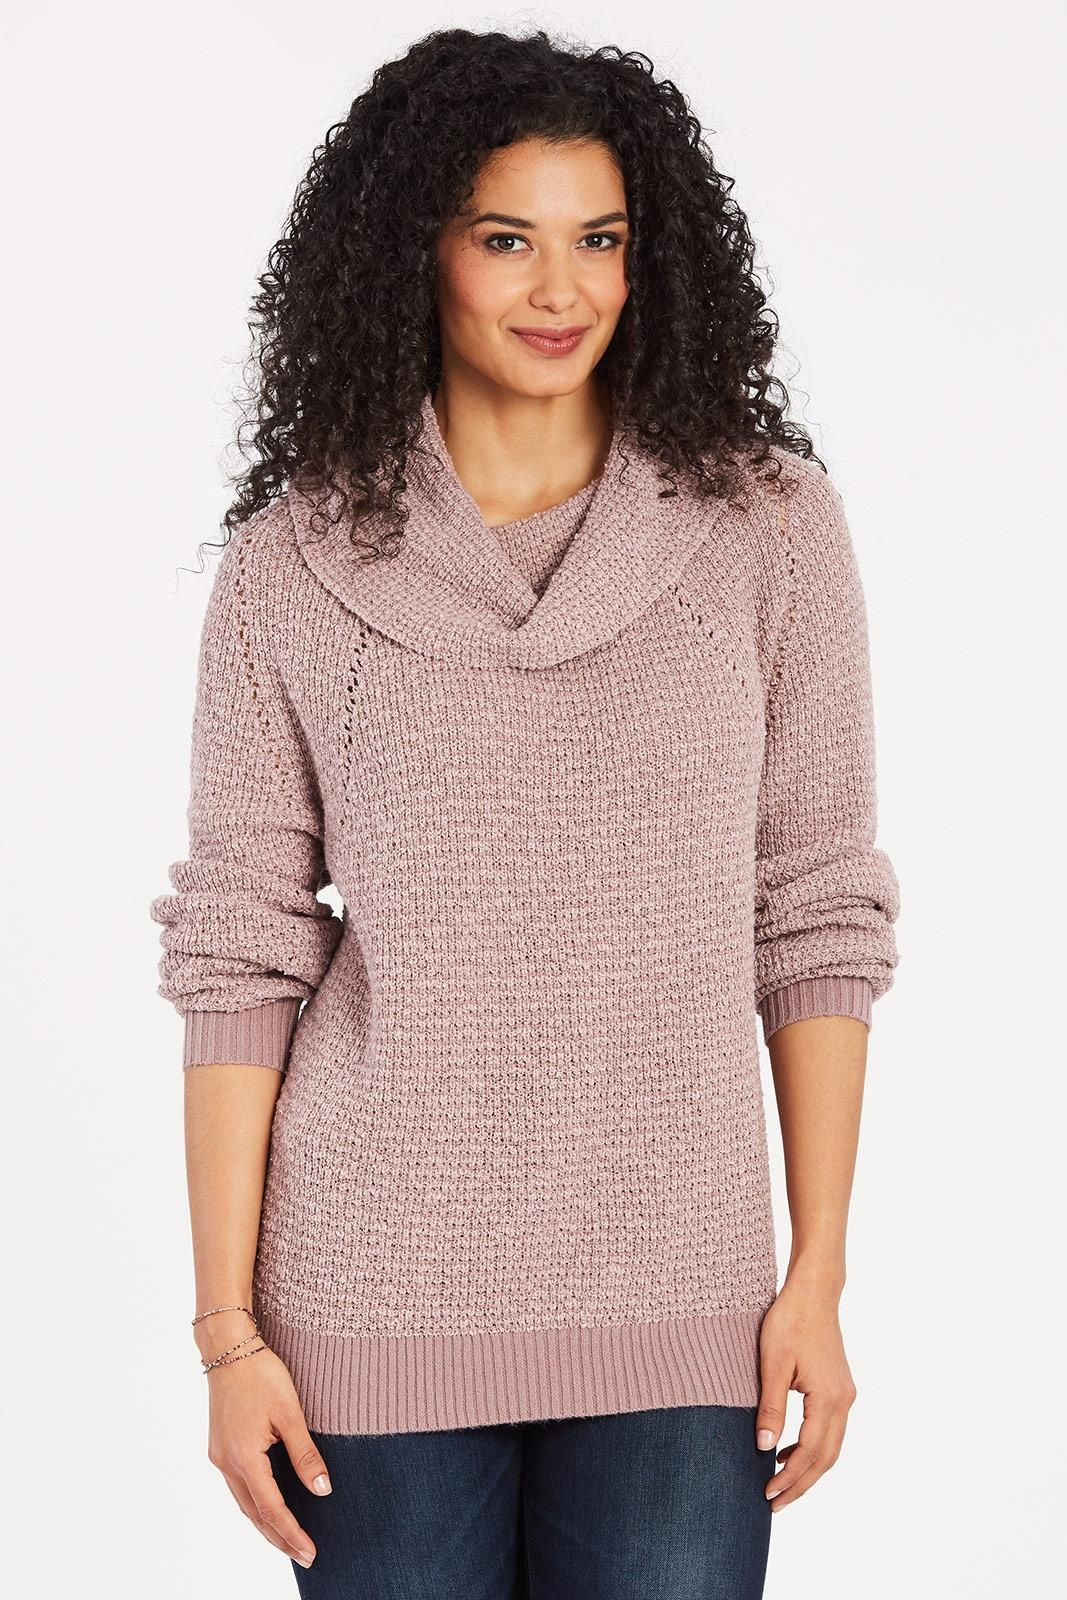 Free People By Your Side Sweater Products By Your Side Jumpers